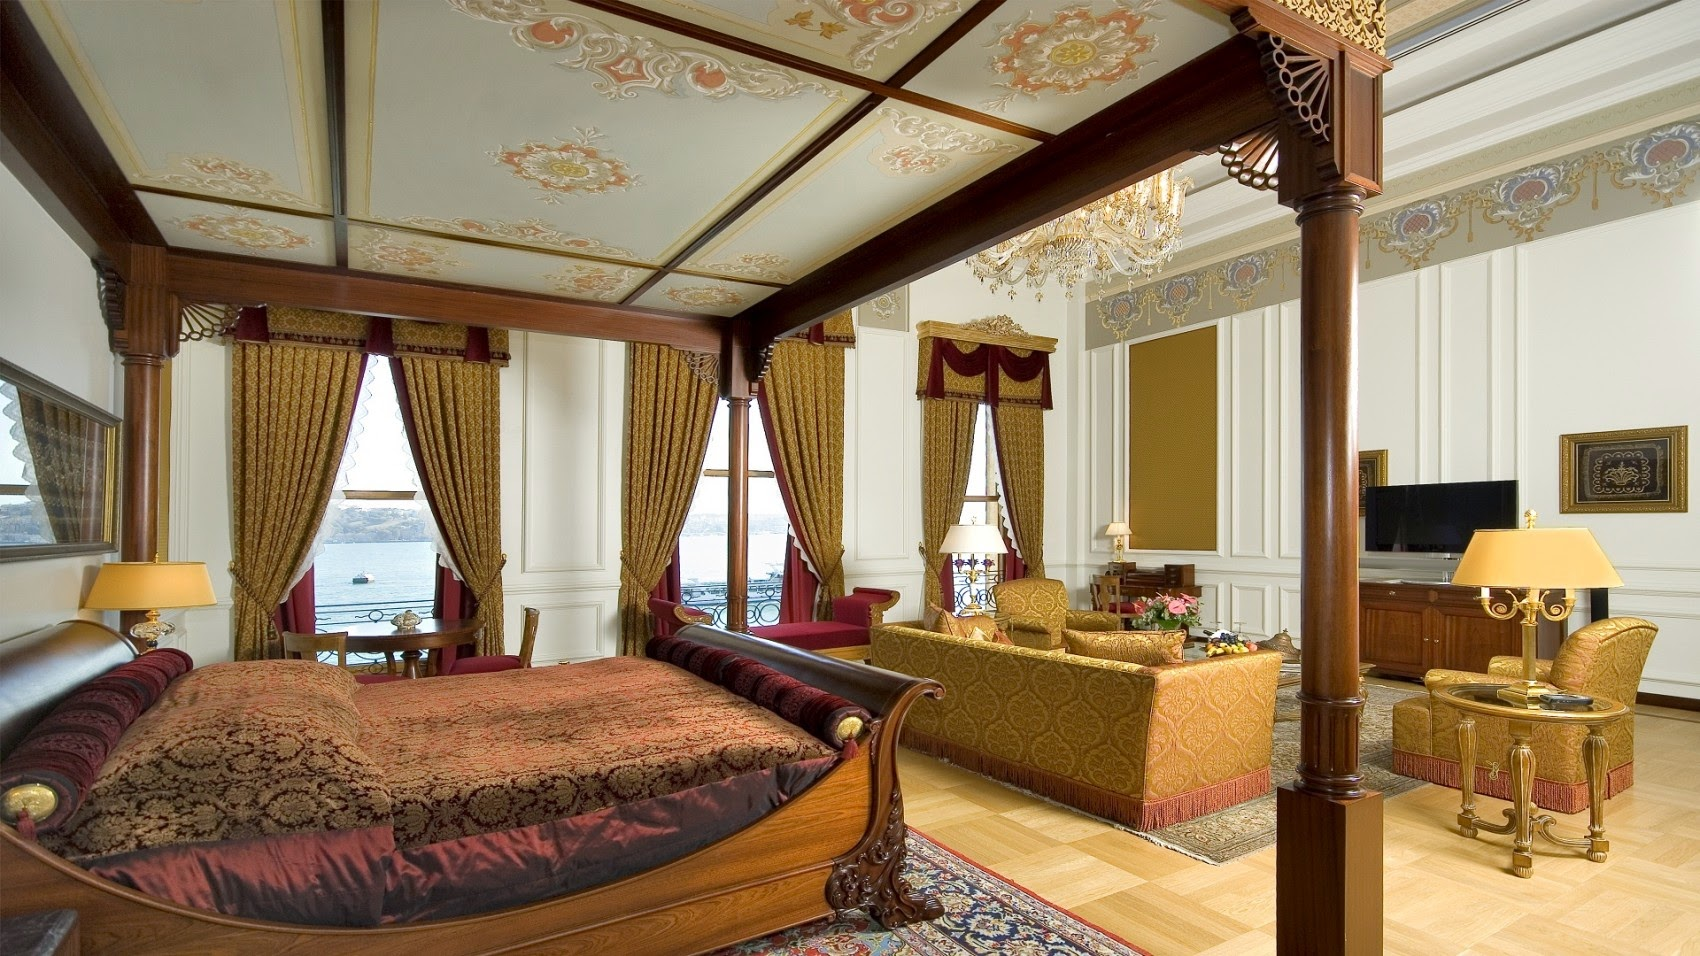 ciragan kempinski room